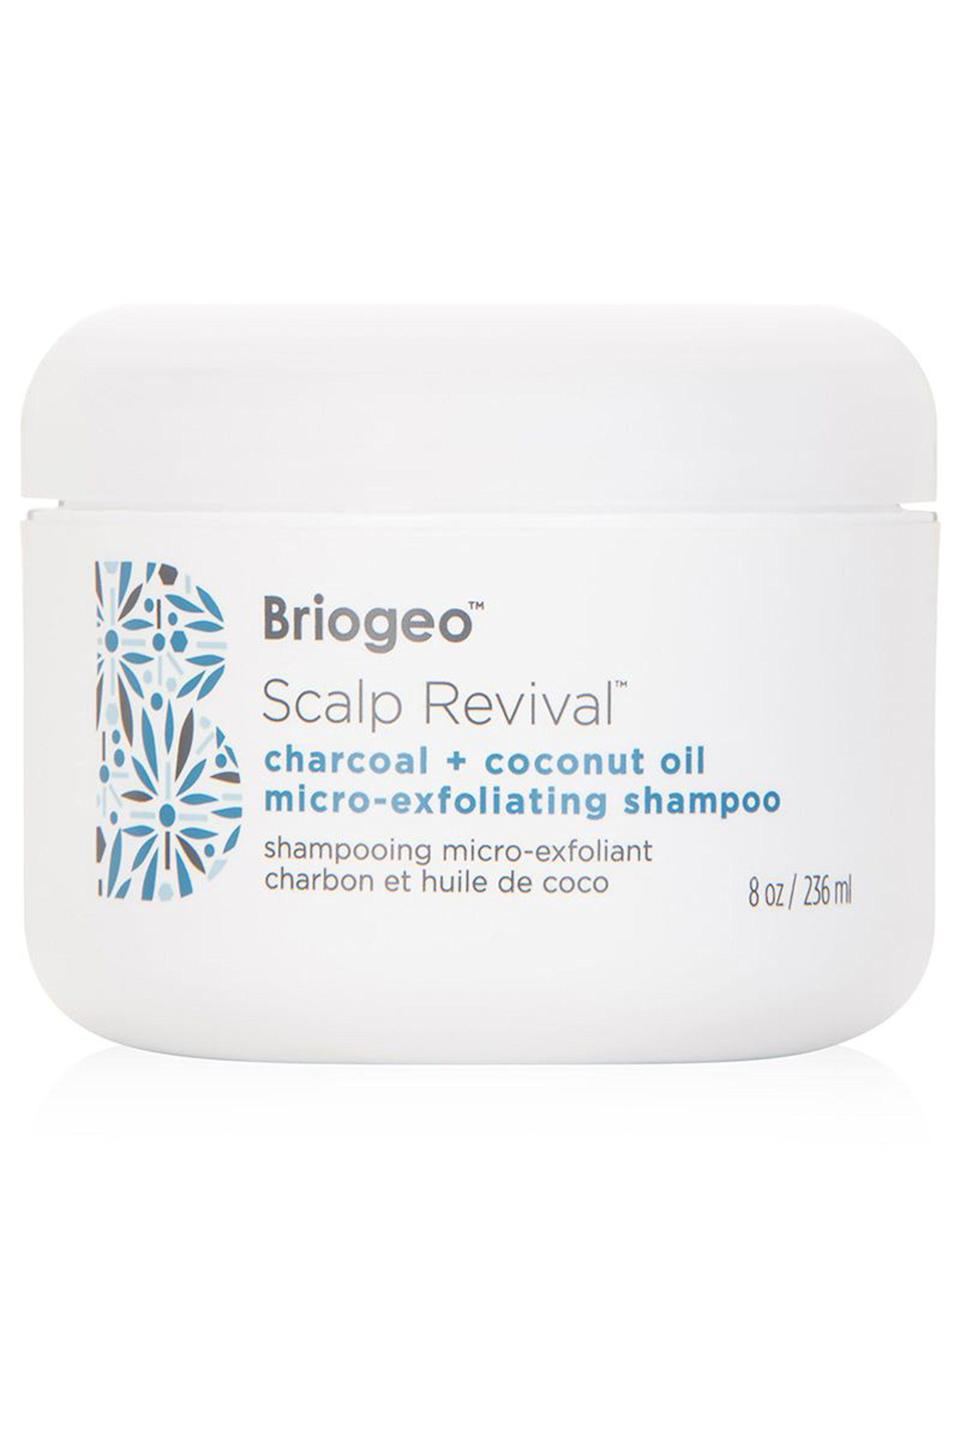 """<p><strong>Briogeo</strong></p><p>dermstore.com</p><p><strong>$42.00</strong></p><p><a href=""""https://go.redirectingat.com?id=74968X1596630&url=https%3A%2F%2Fwww.dermstore.com%2Fproduct_Scalp%2BRevival%2BCharcoal%2BCoconut%2BOil%2BMicroExfoliating%2BShampoo_71266.htm&sref=https%3A%2F%2Fwww.cosmopolitan.com%2Fstyle-beauty%2Fbeauty%2Fg26114920%2Fbest-scalp-scrubs%2F"""" rel=""""nofollow noopener"""" target=""""_blank"""" data-ylk=""""slk:Shop Now"""" class=""""link rapid-noclick-resp"""">Shop Now</a></p><p>A scalp scrub with hydrating oils is a major key if you have <a href=""""https://www.cosmopolitan.com/style-beauty/beauty/a29873251/how-to-fix-dry-hair-tips/"""" rel=""""nofollow noopener"""" target=""""_blank"""" data-ylk=""""slk:dry hair"""" class=""""link rapid-noclick-resp"""">dry hair</a>, otherwise you risk making the dryness even worse. This one from Briogeo is<strong> formulated with coconut oil to increase moisture levels,</strong> along with micro-exfoliators that work to gently remove flakes.<br></p>"""